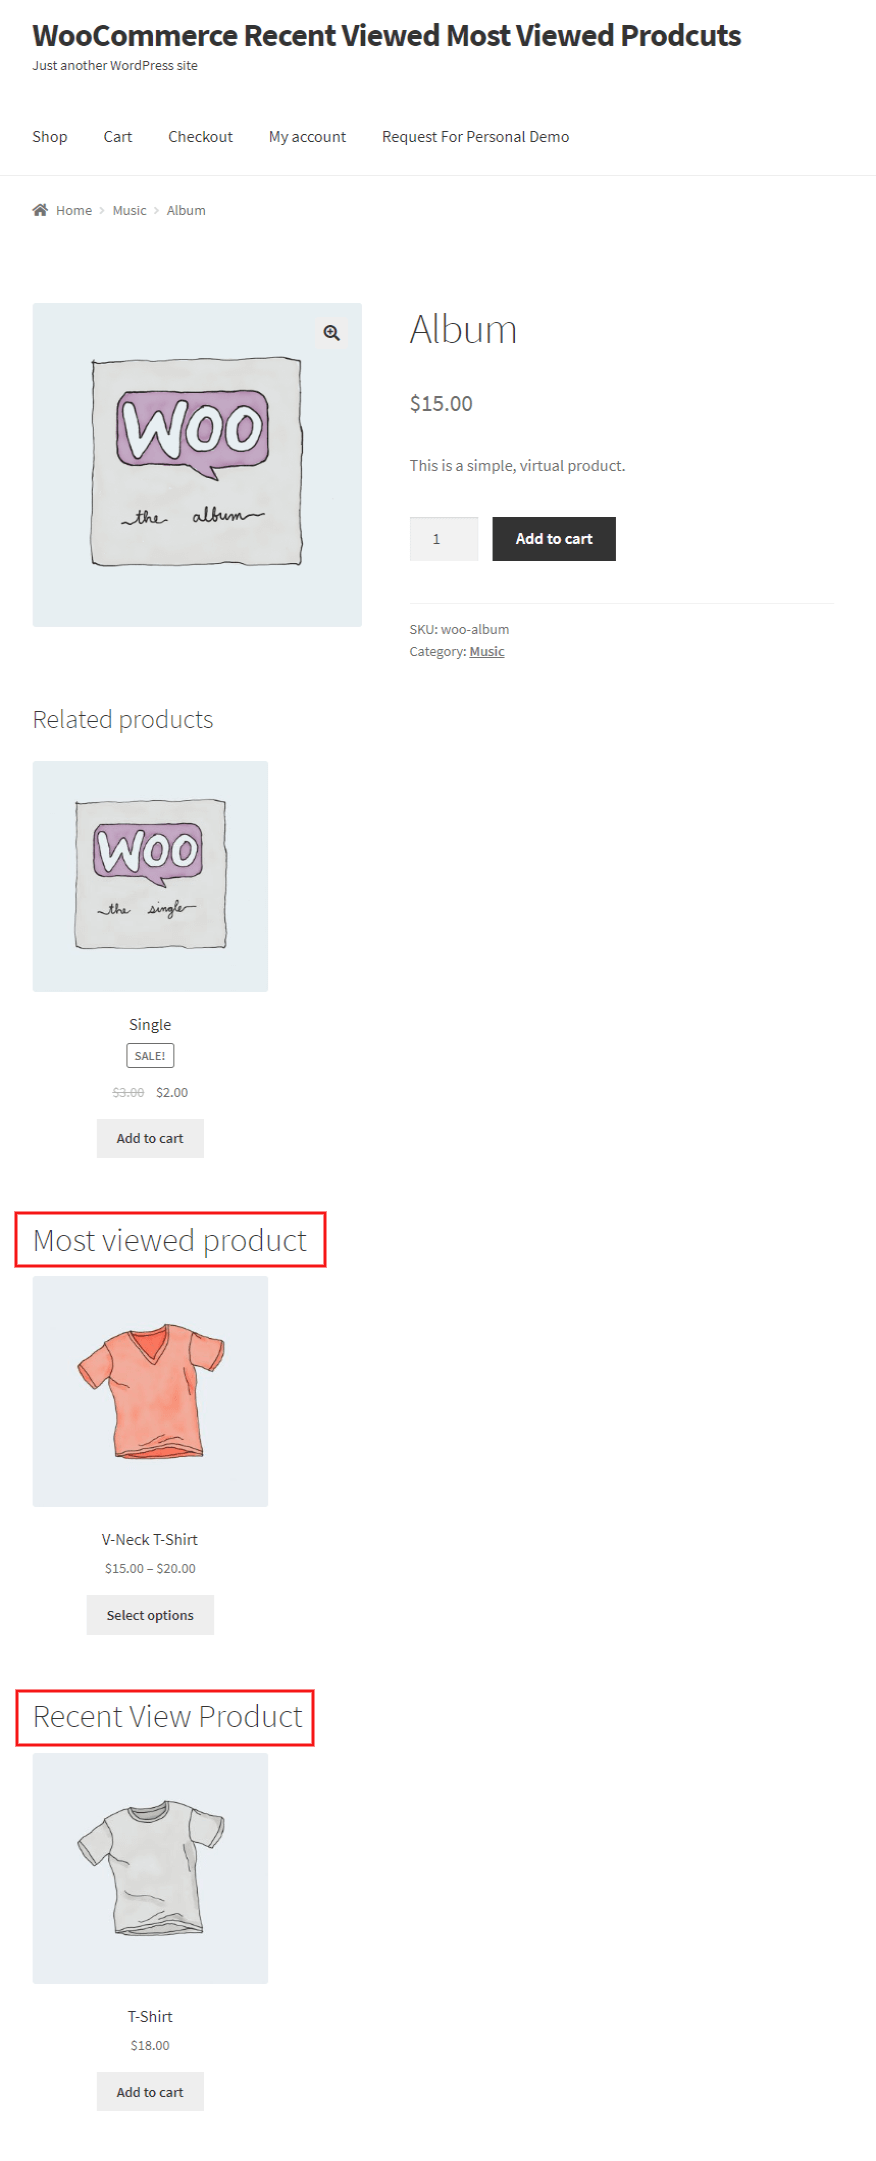 enhanced-woocommerce-recently-viewed-most-viewed-products-recent-view-product-product-detail-page